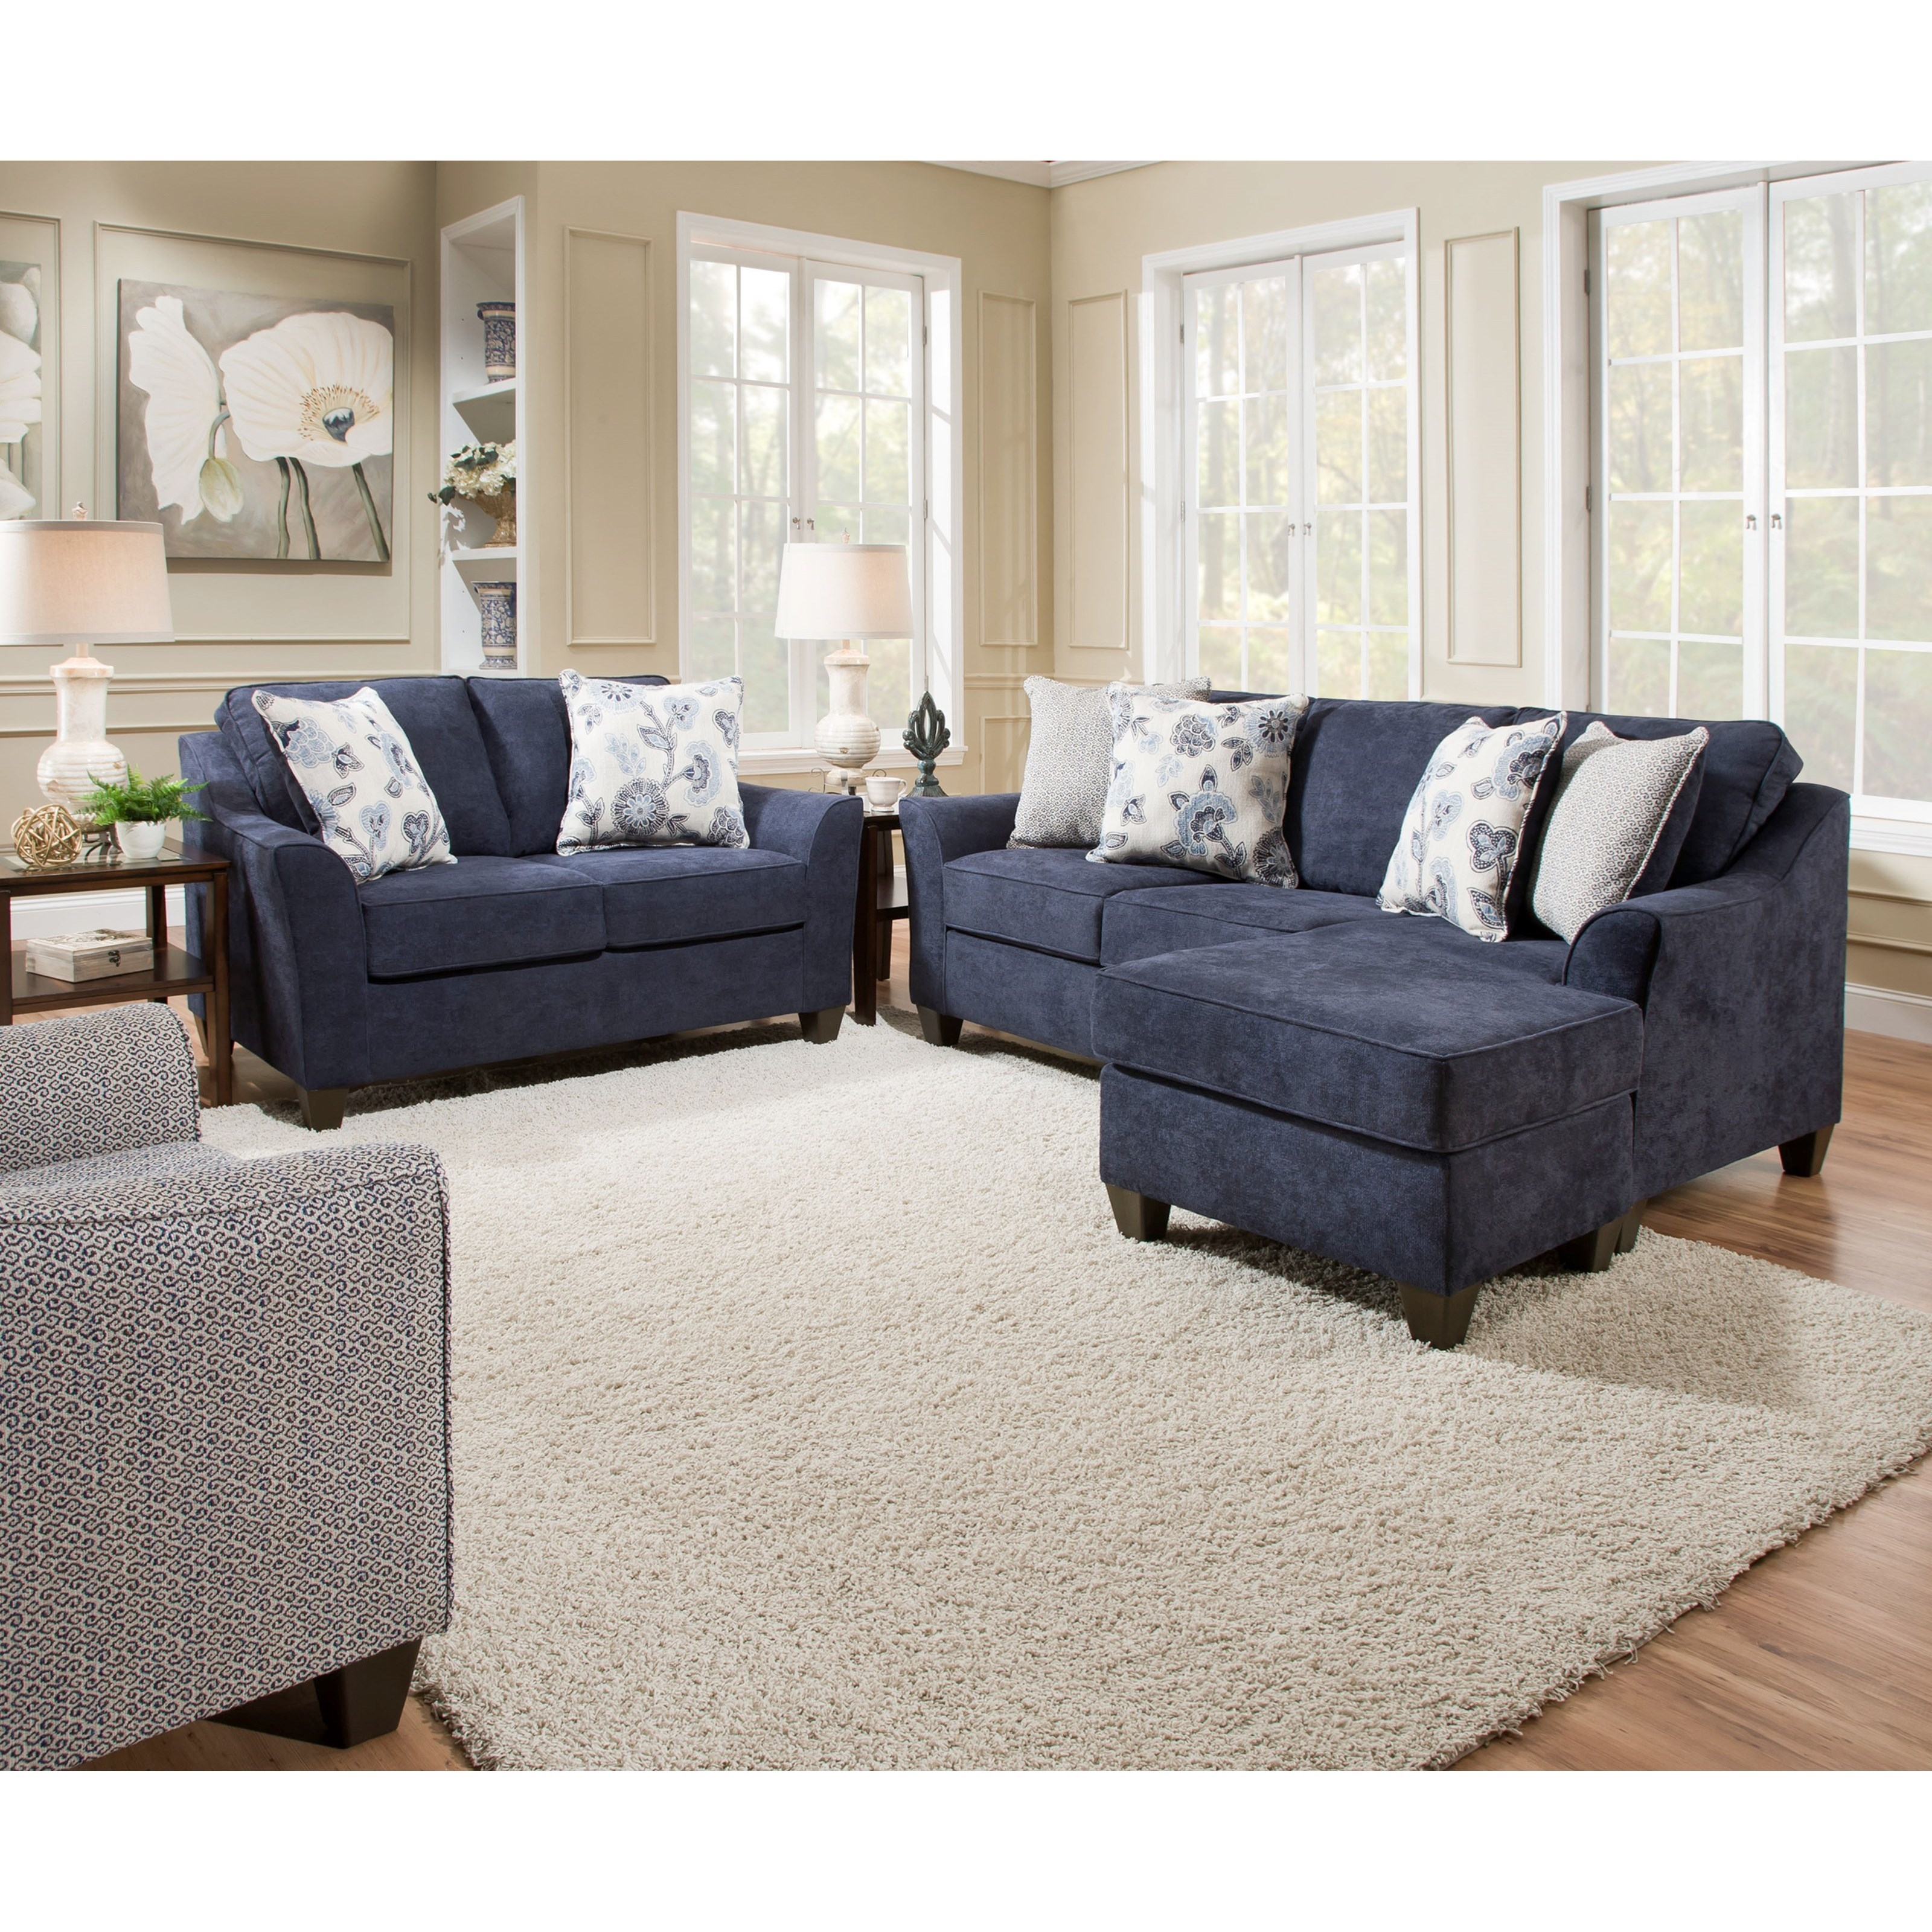 Sectional Sofa Couch Reversible Chaise Ottoman Furniture: United Furniture Industries 4330 4330SOFACHAISE